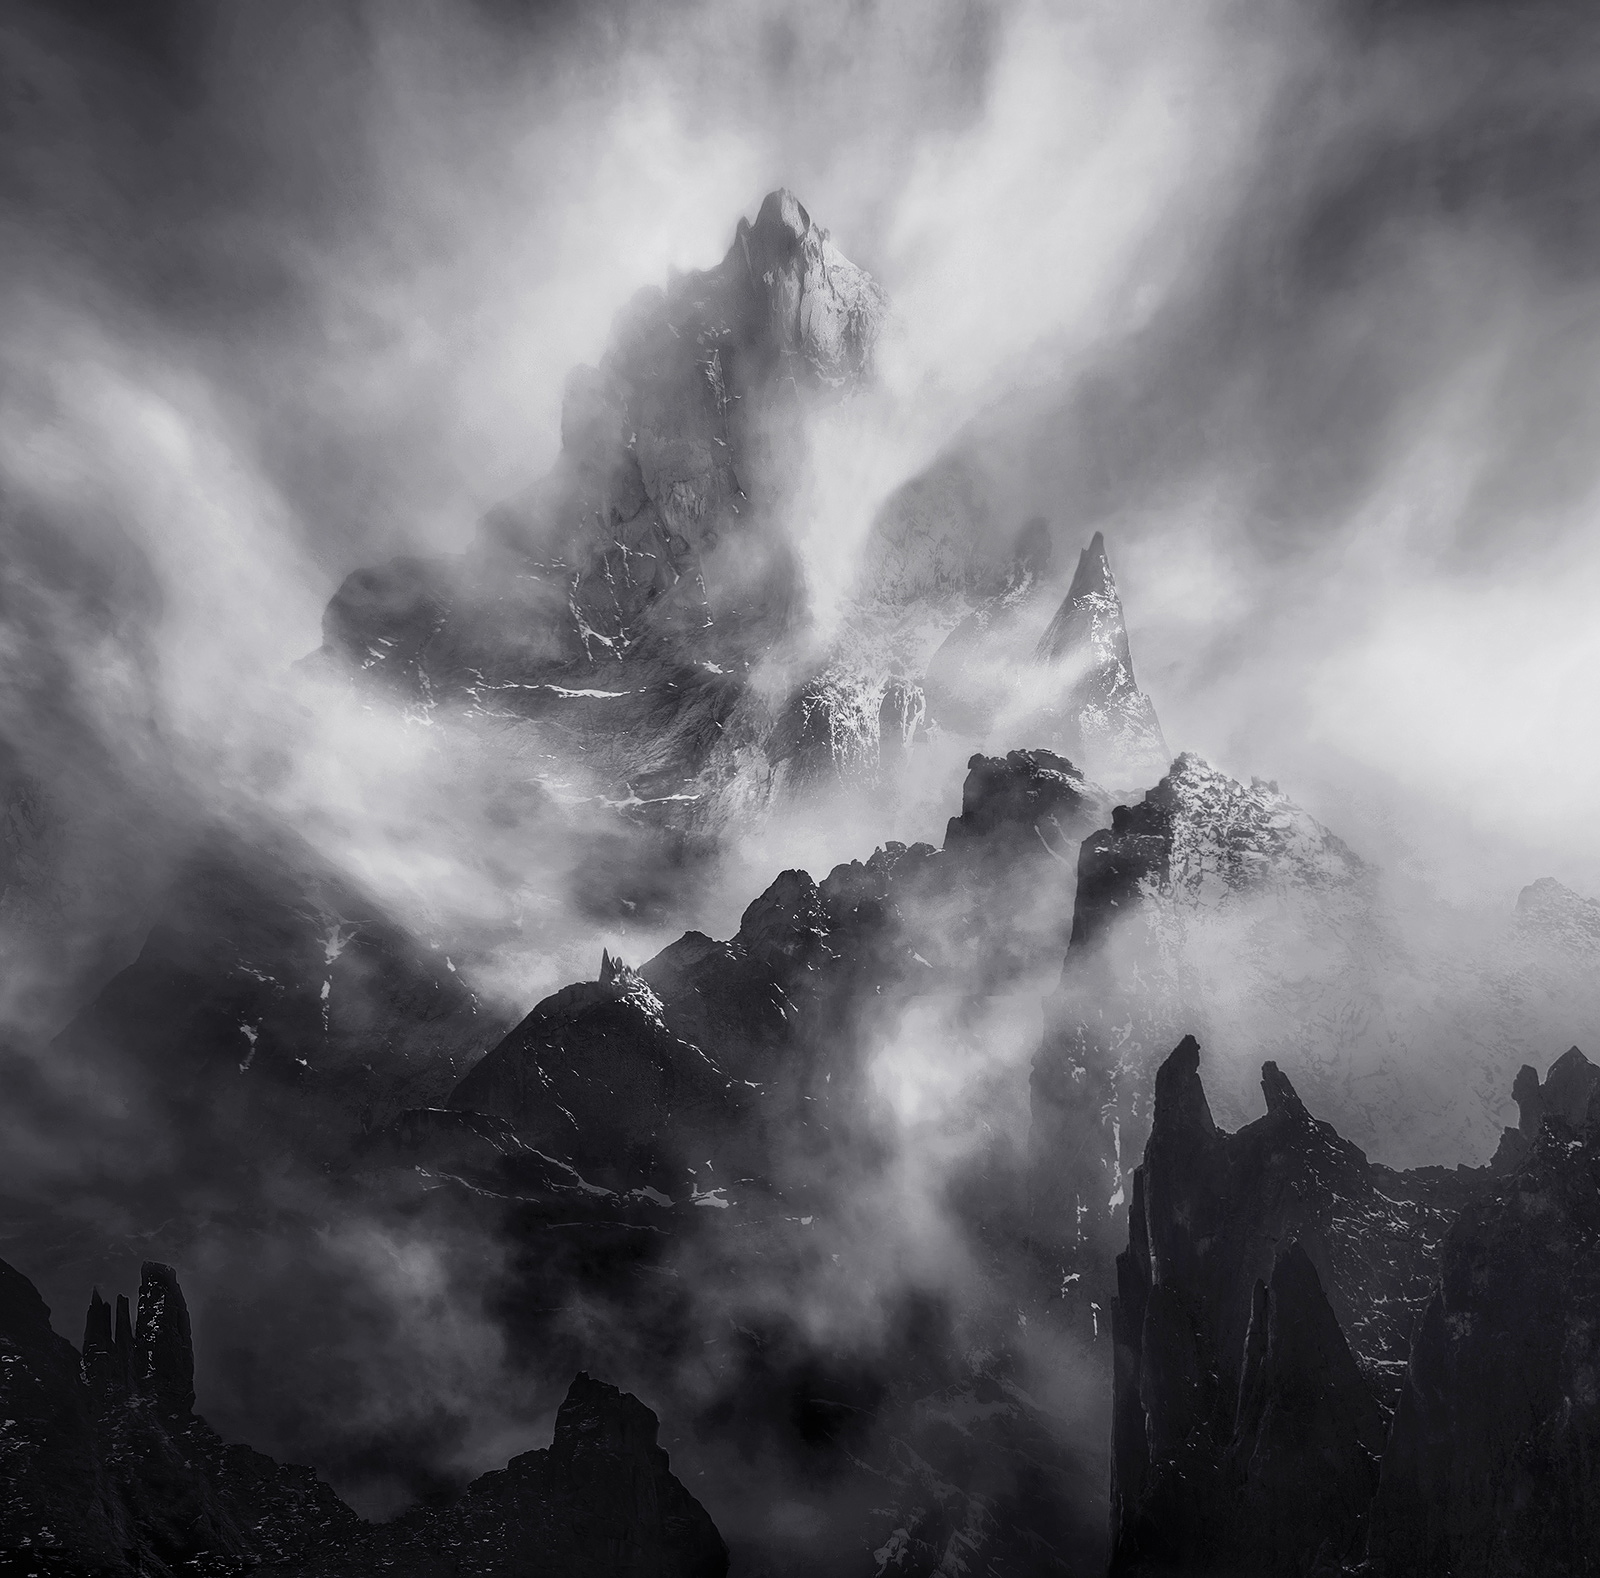 An artistic rendition featuring the dramatic layers of peaks that make up the Yukon's Far North.